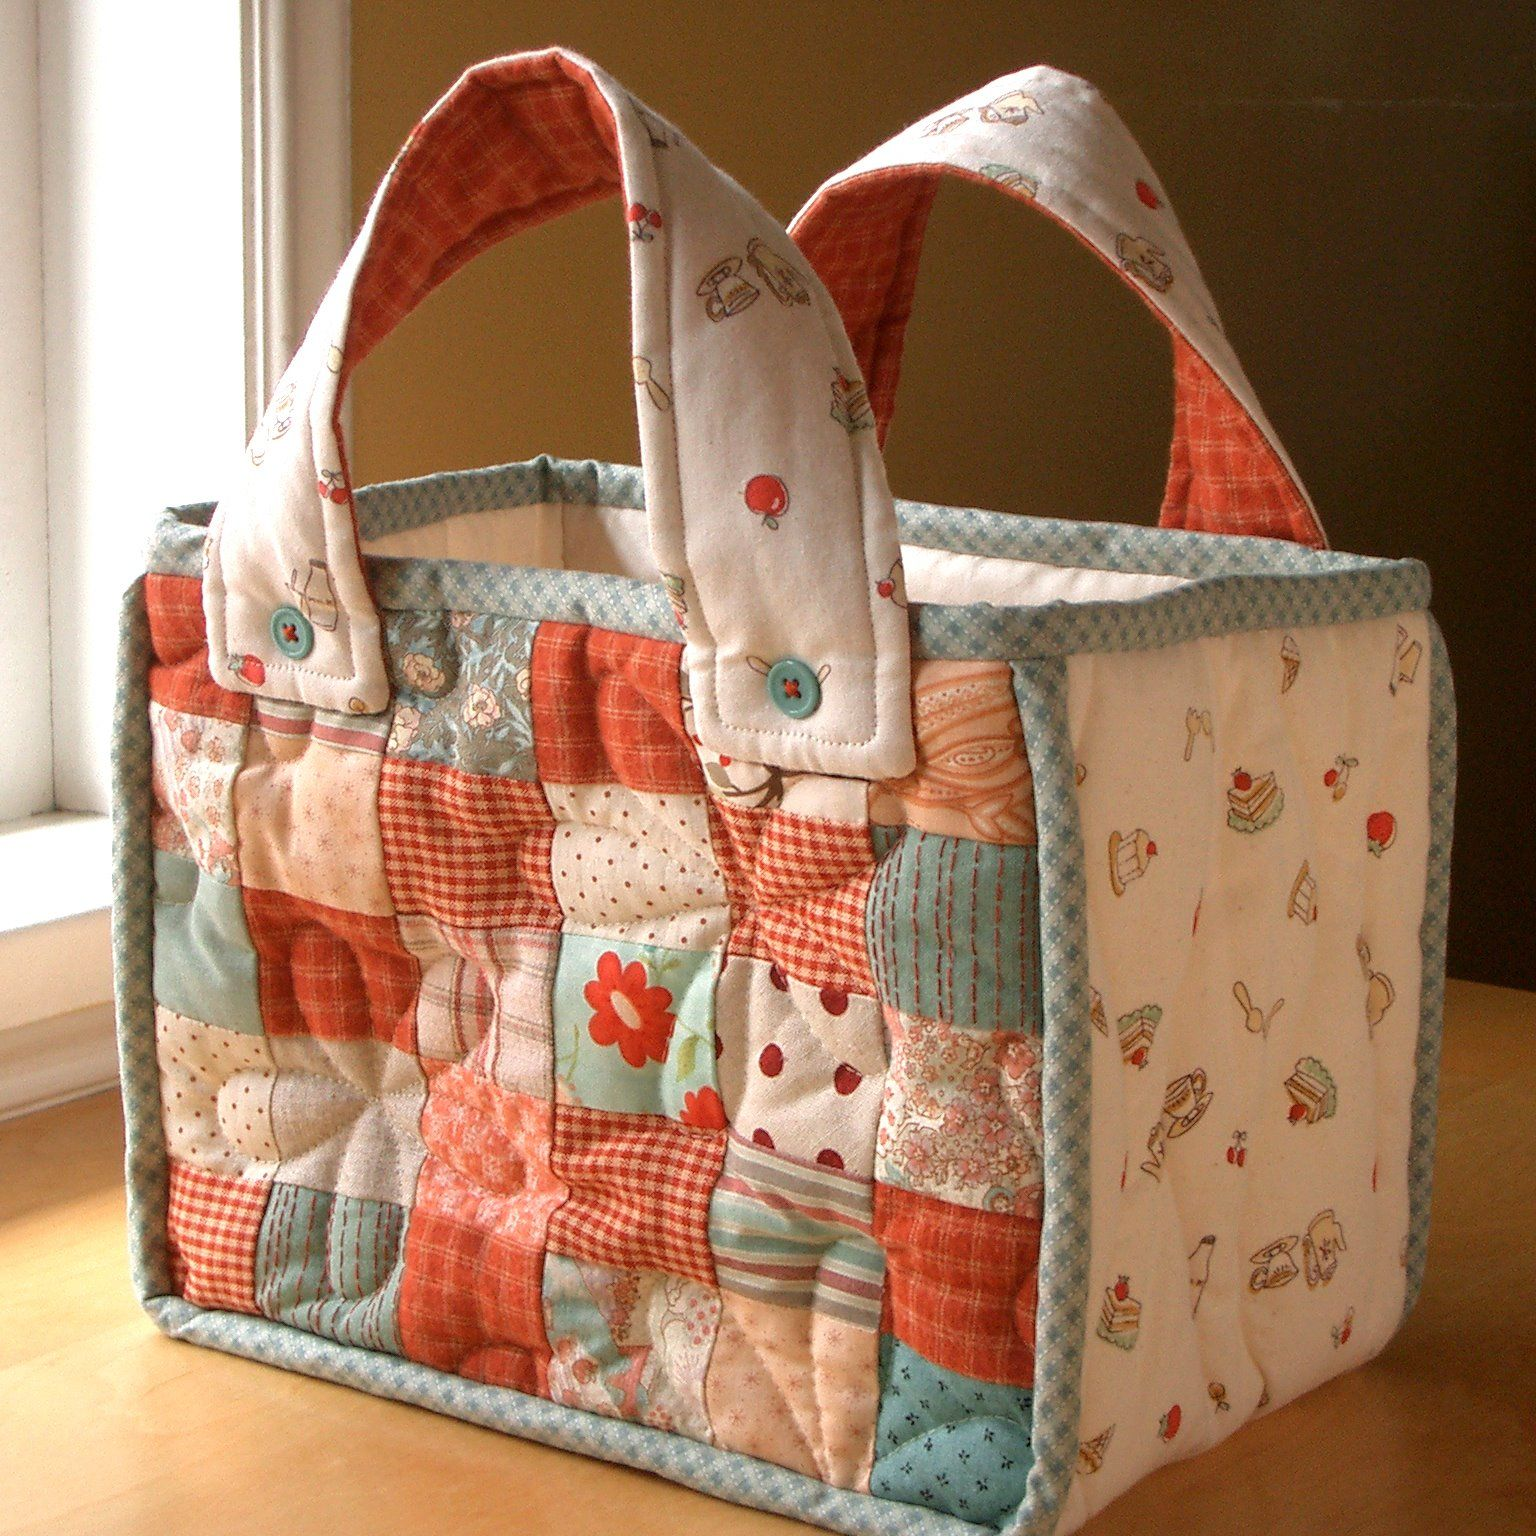 One bag finished... only 17 TeaCup, CoffeeMug & Hot Cocoa pouches ...